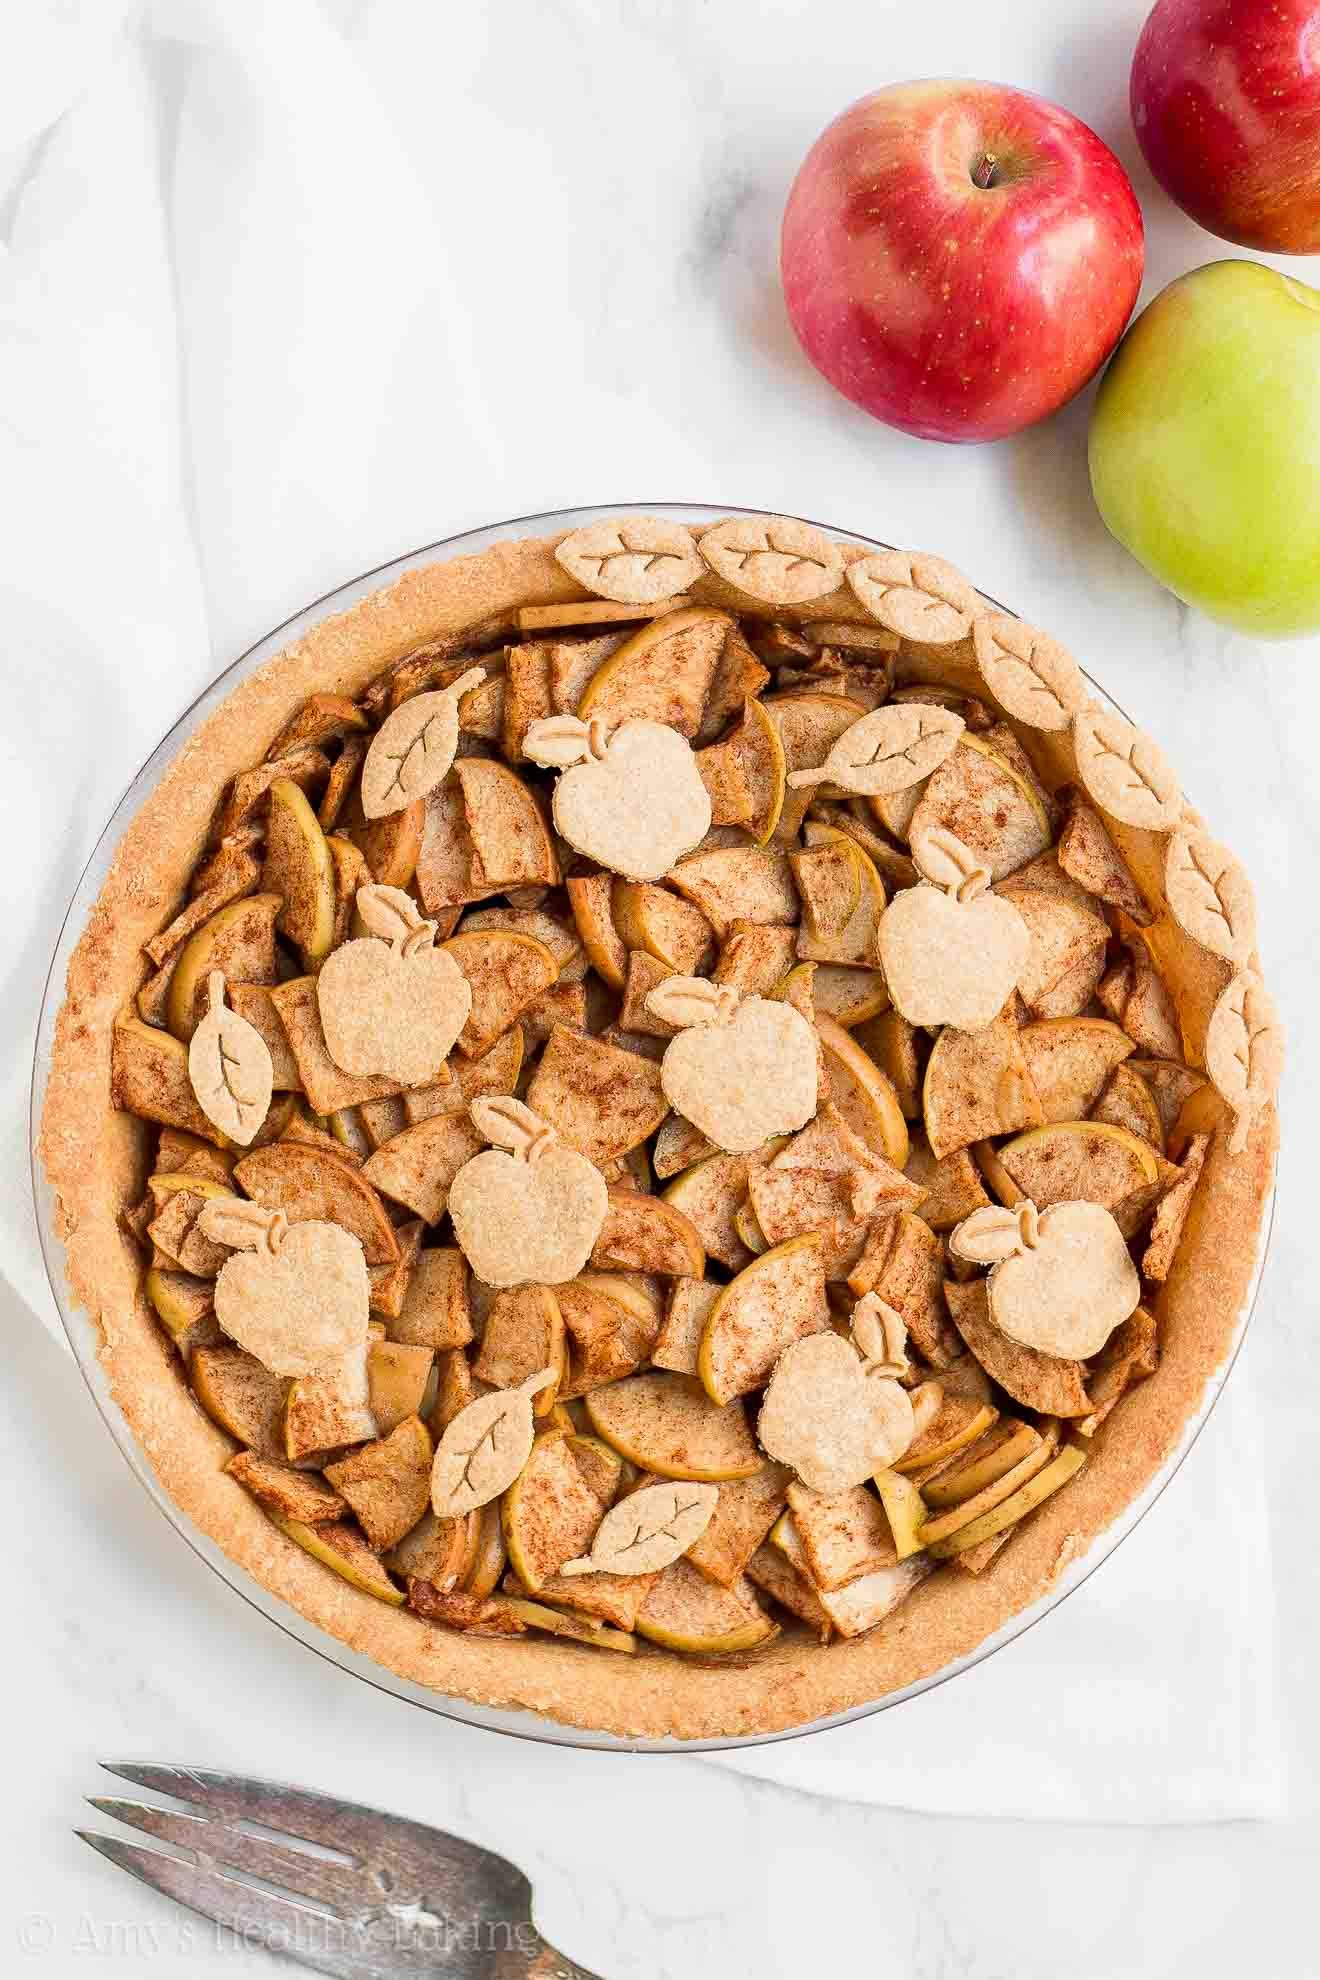 The ULTIMATE Healthy Apple Pie Recipe -- truly the BEST apple pie I've ever had! Sweet filling, flaky crust & only 129 calories! You'll never use another apple pie recipe again! ♡ healthy homemade apple pie from scratch. clean eating healthy apple pie. #applepie